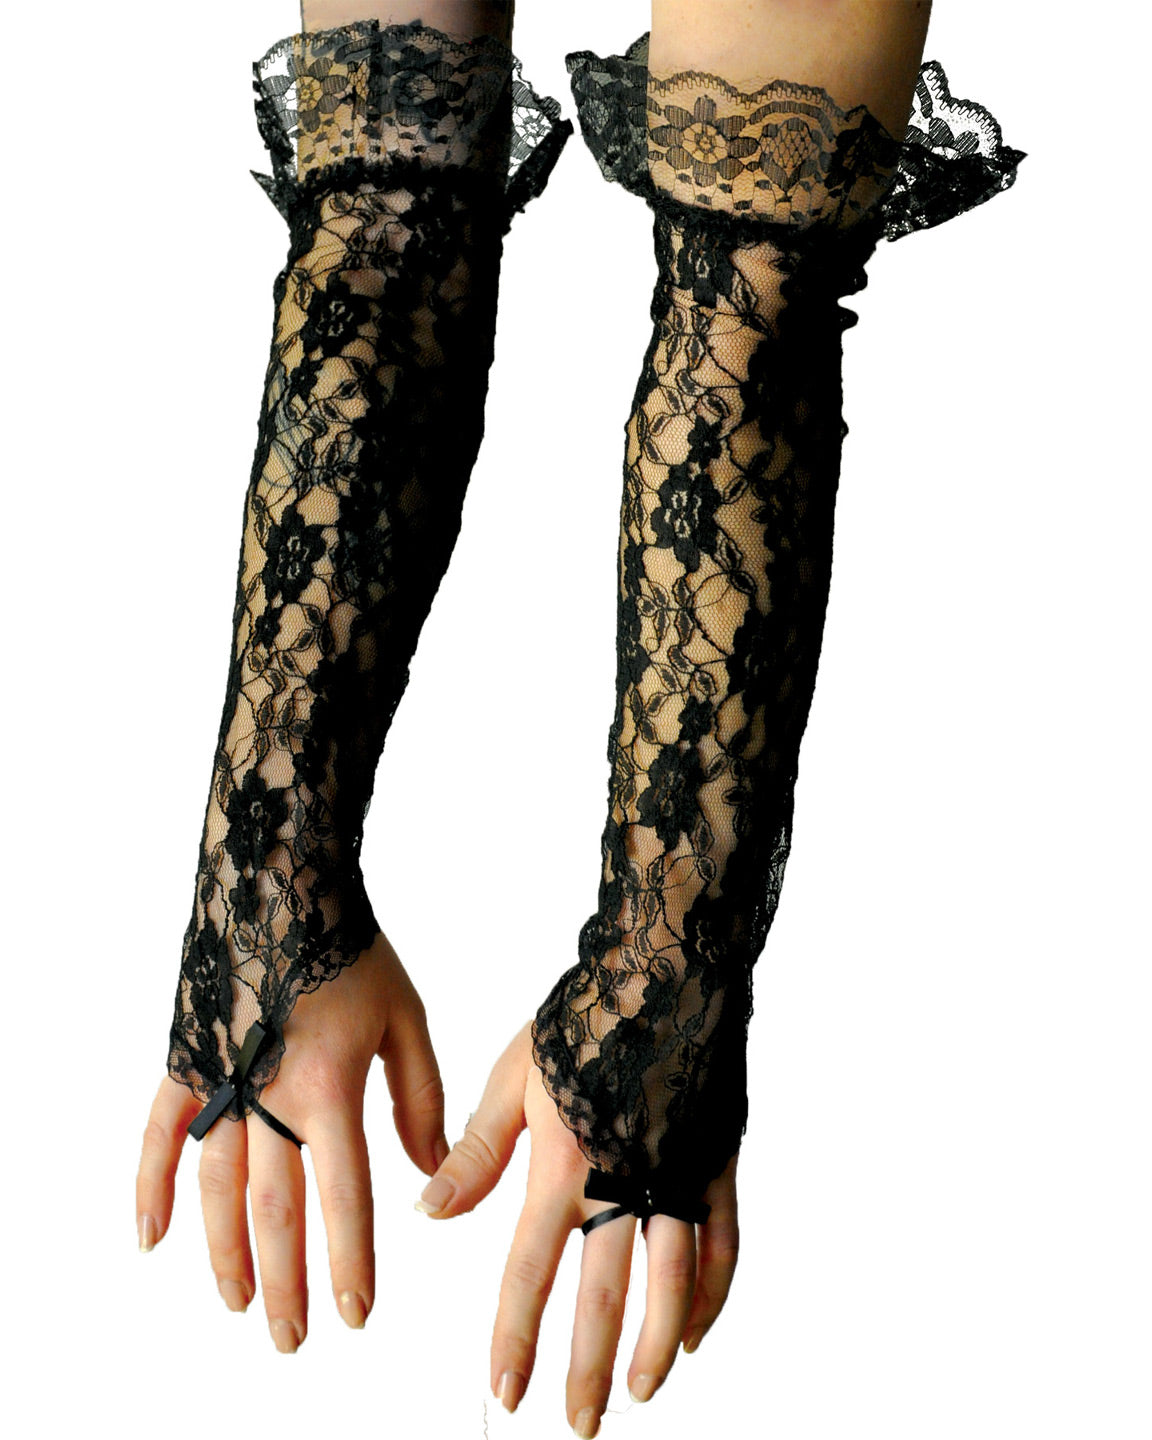 Gloves Black Lace Fingerless